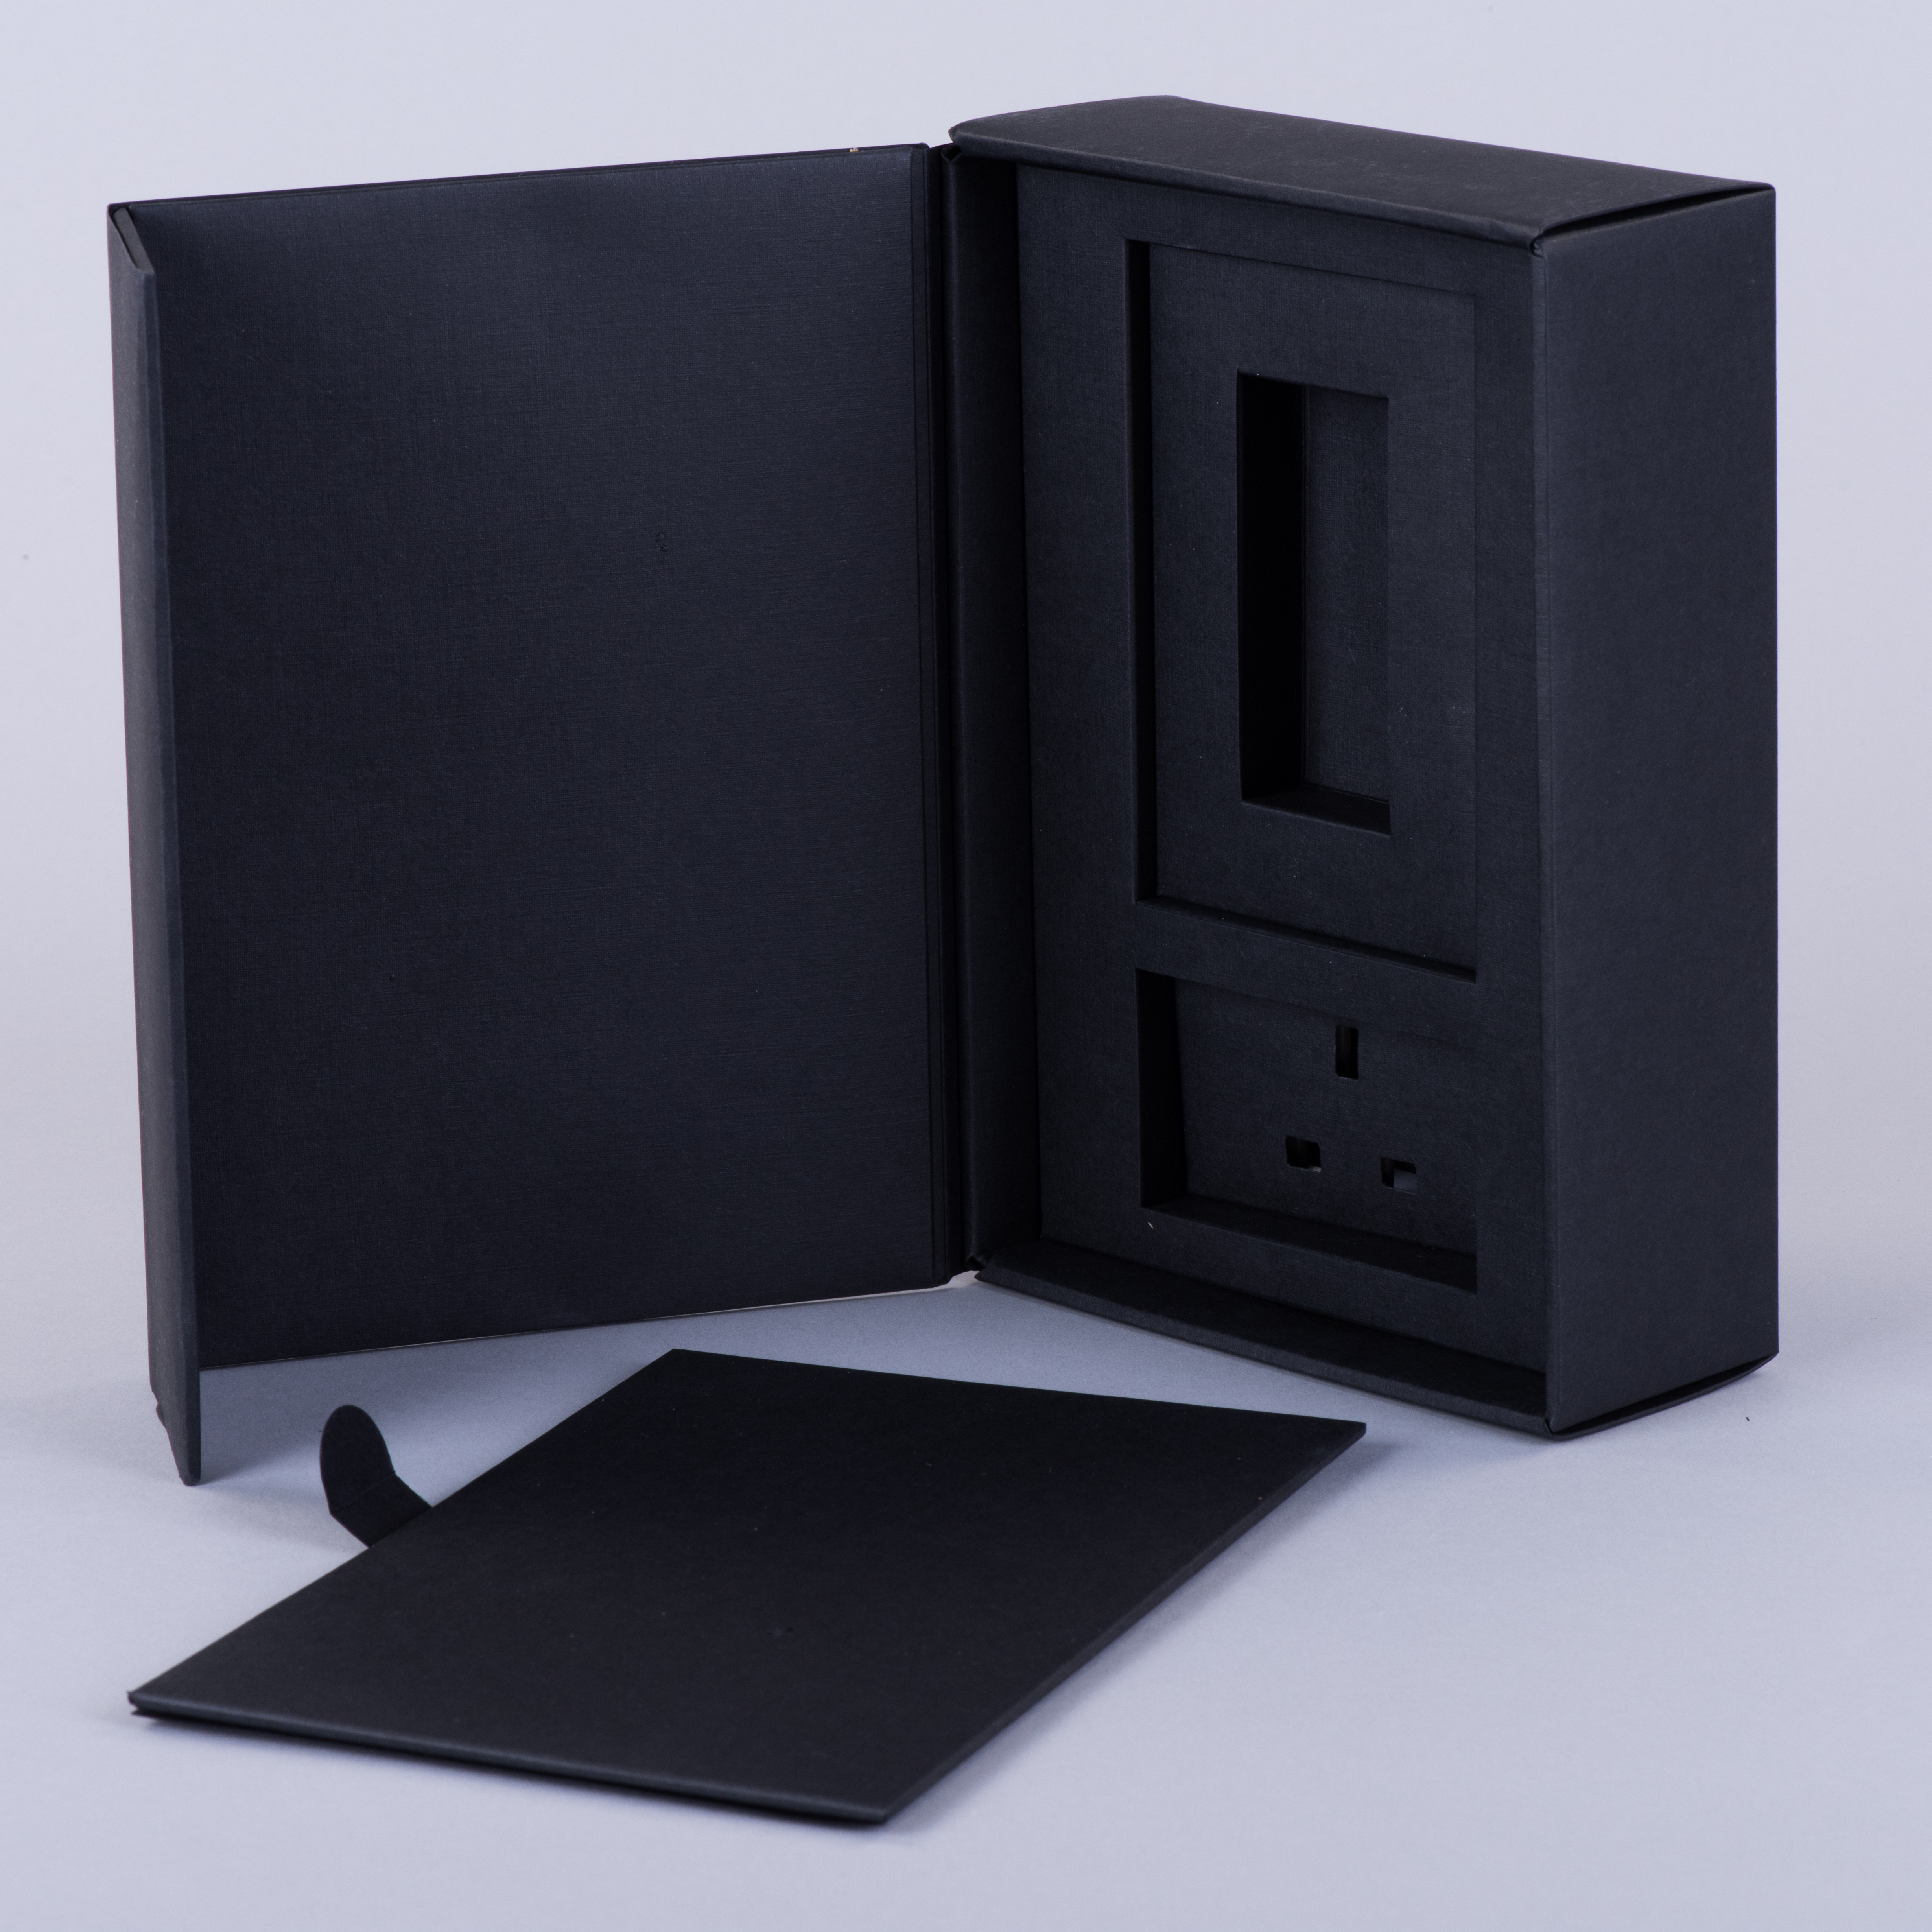 Hinged Lid Rigid style Presentation box with multiple layered fitment